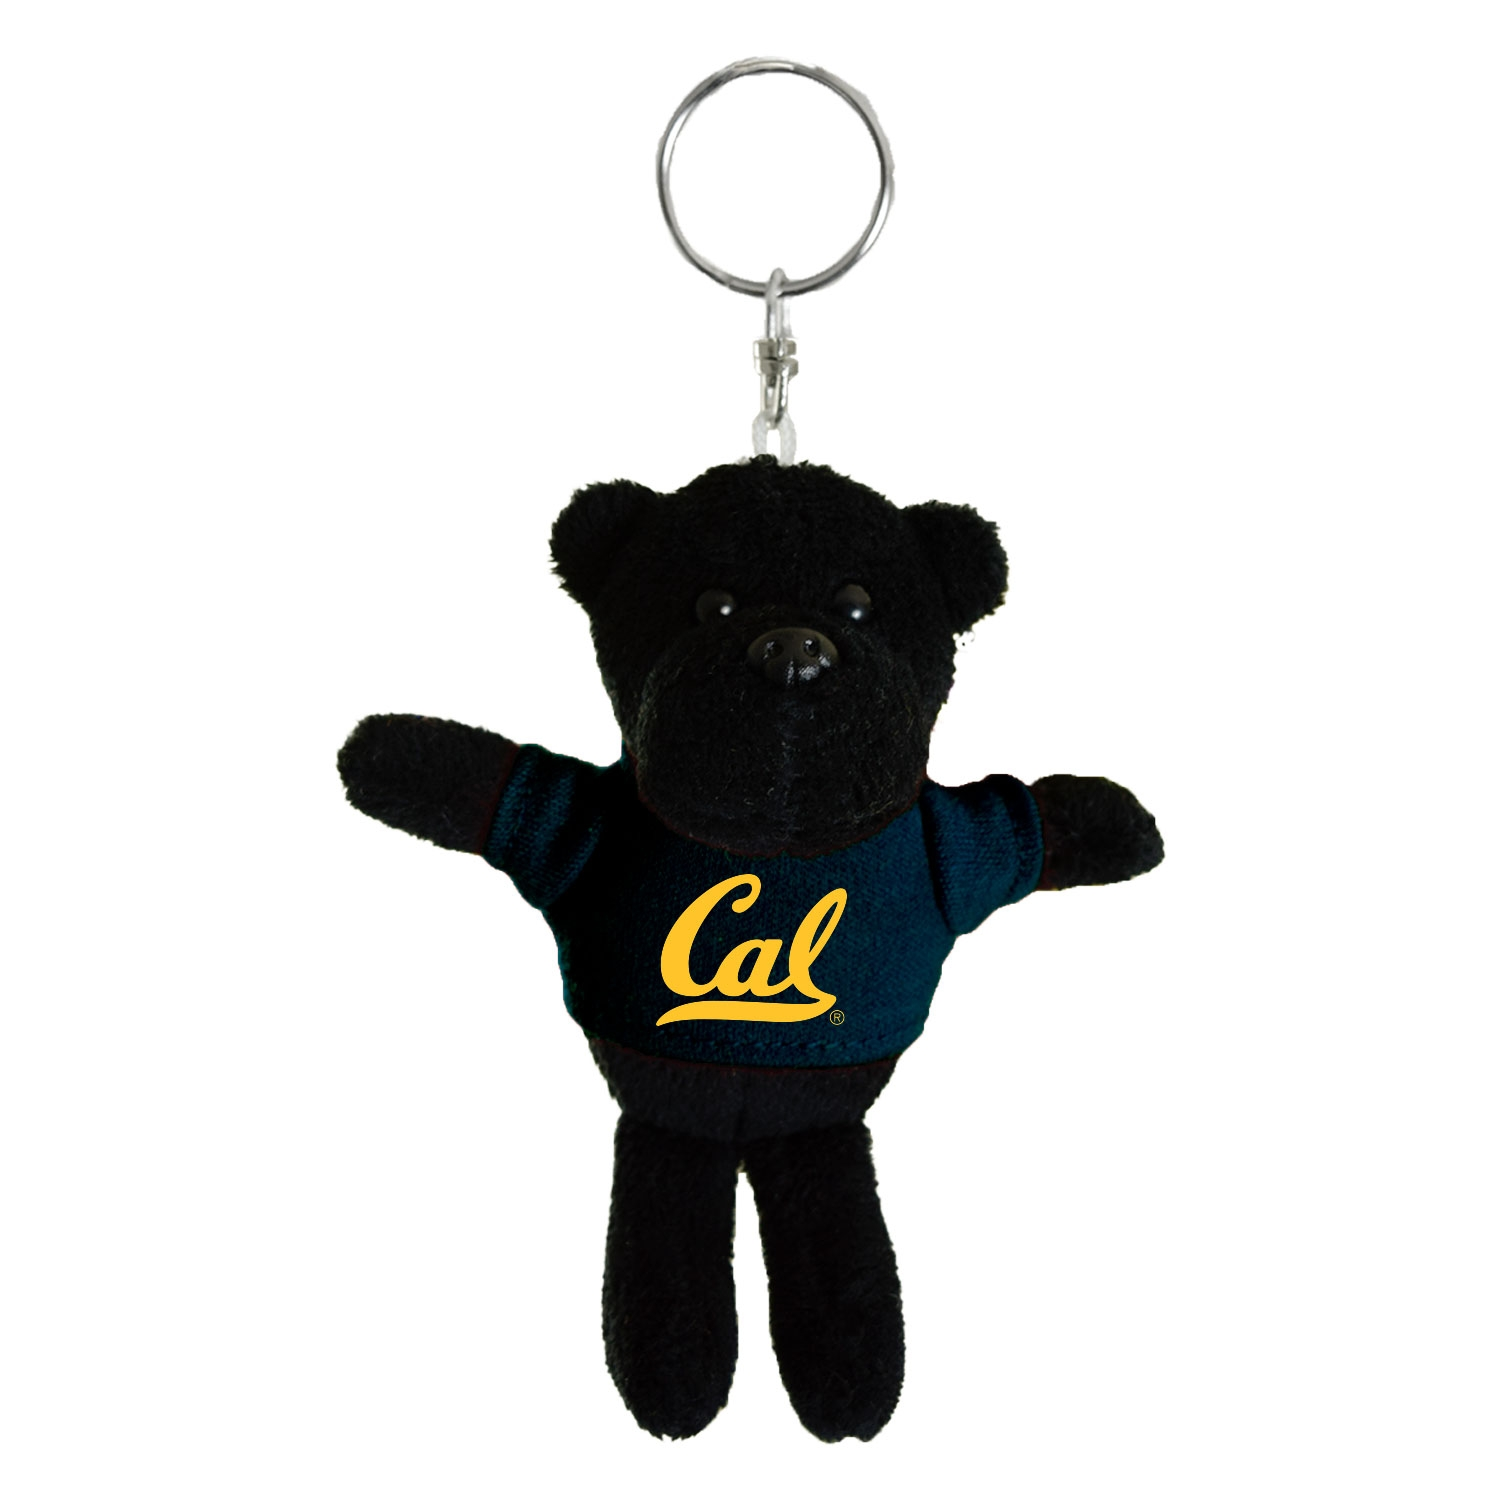 Cal Bears Mascot Factory Panther Keychain